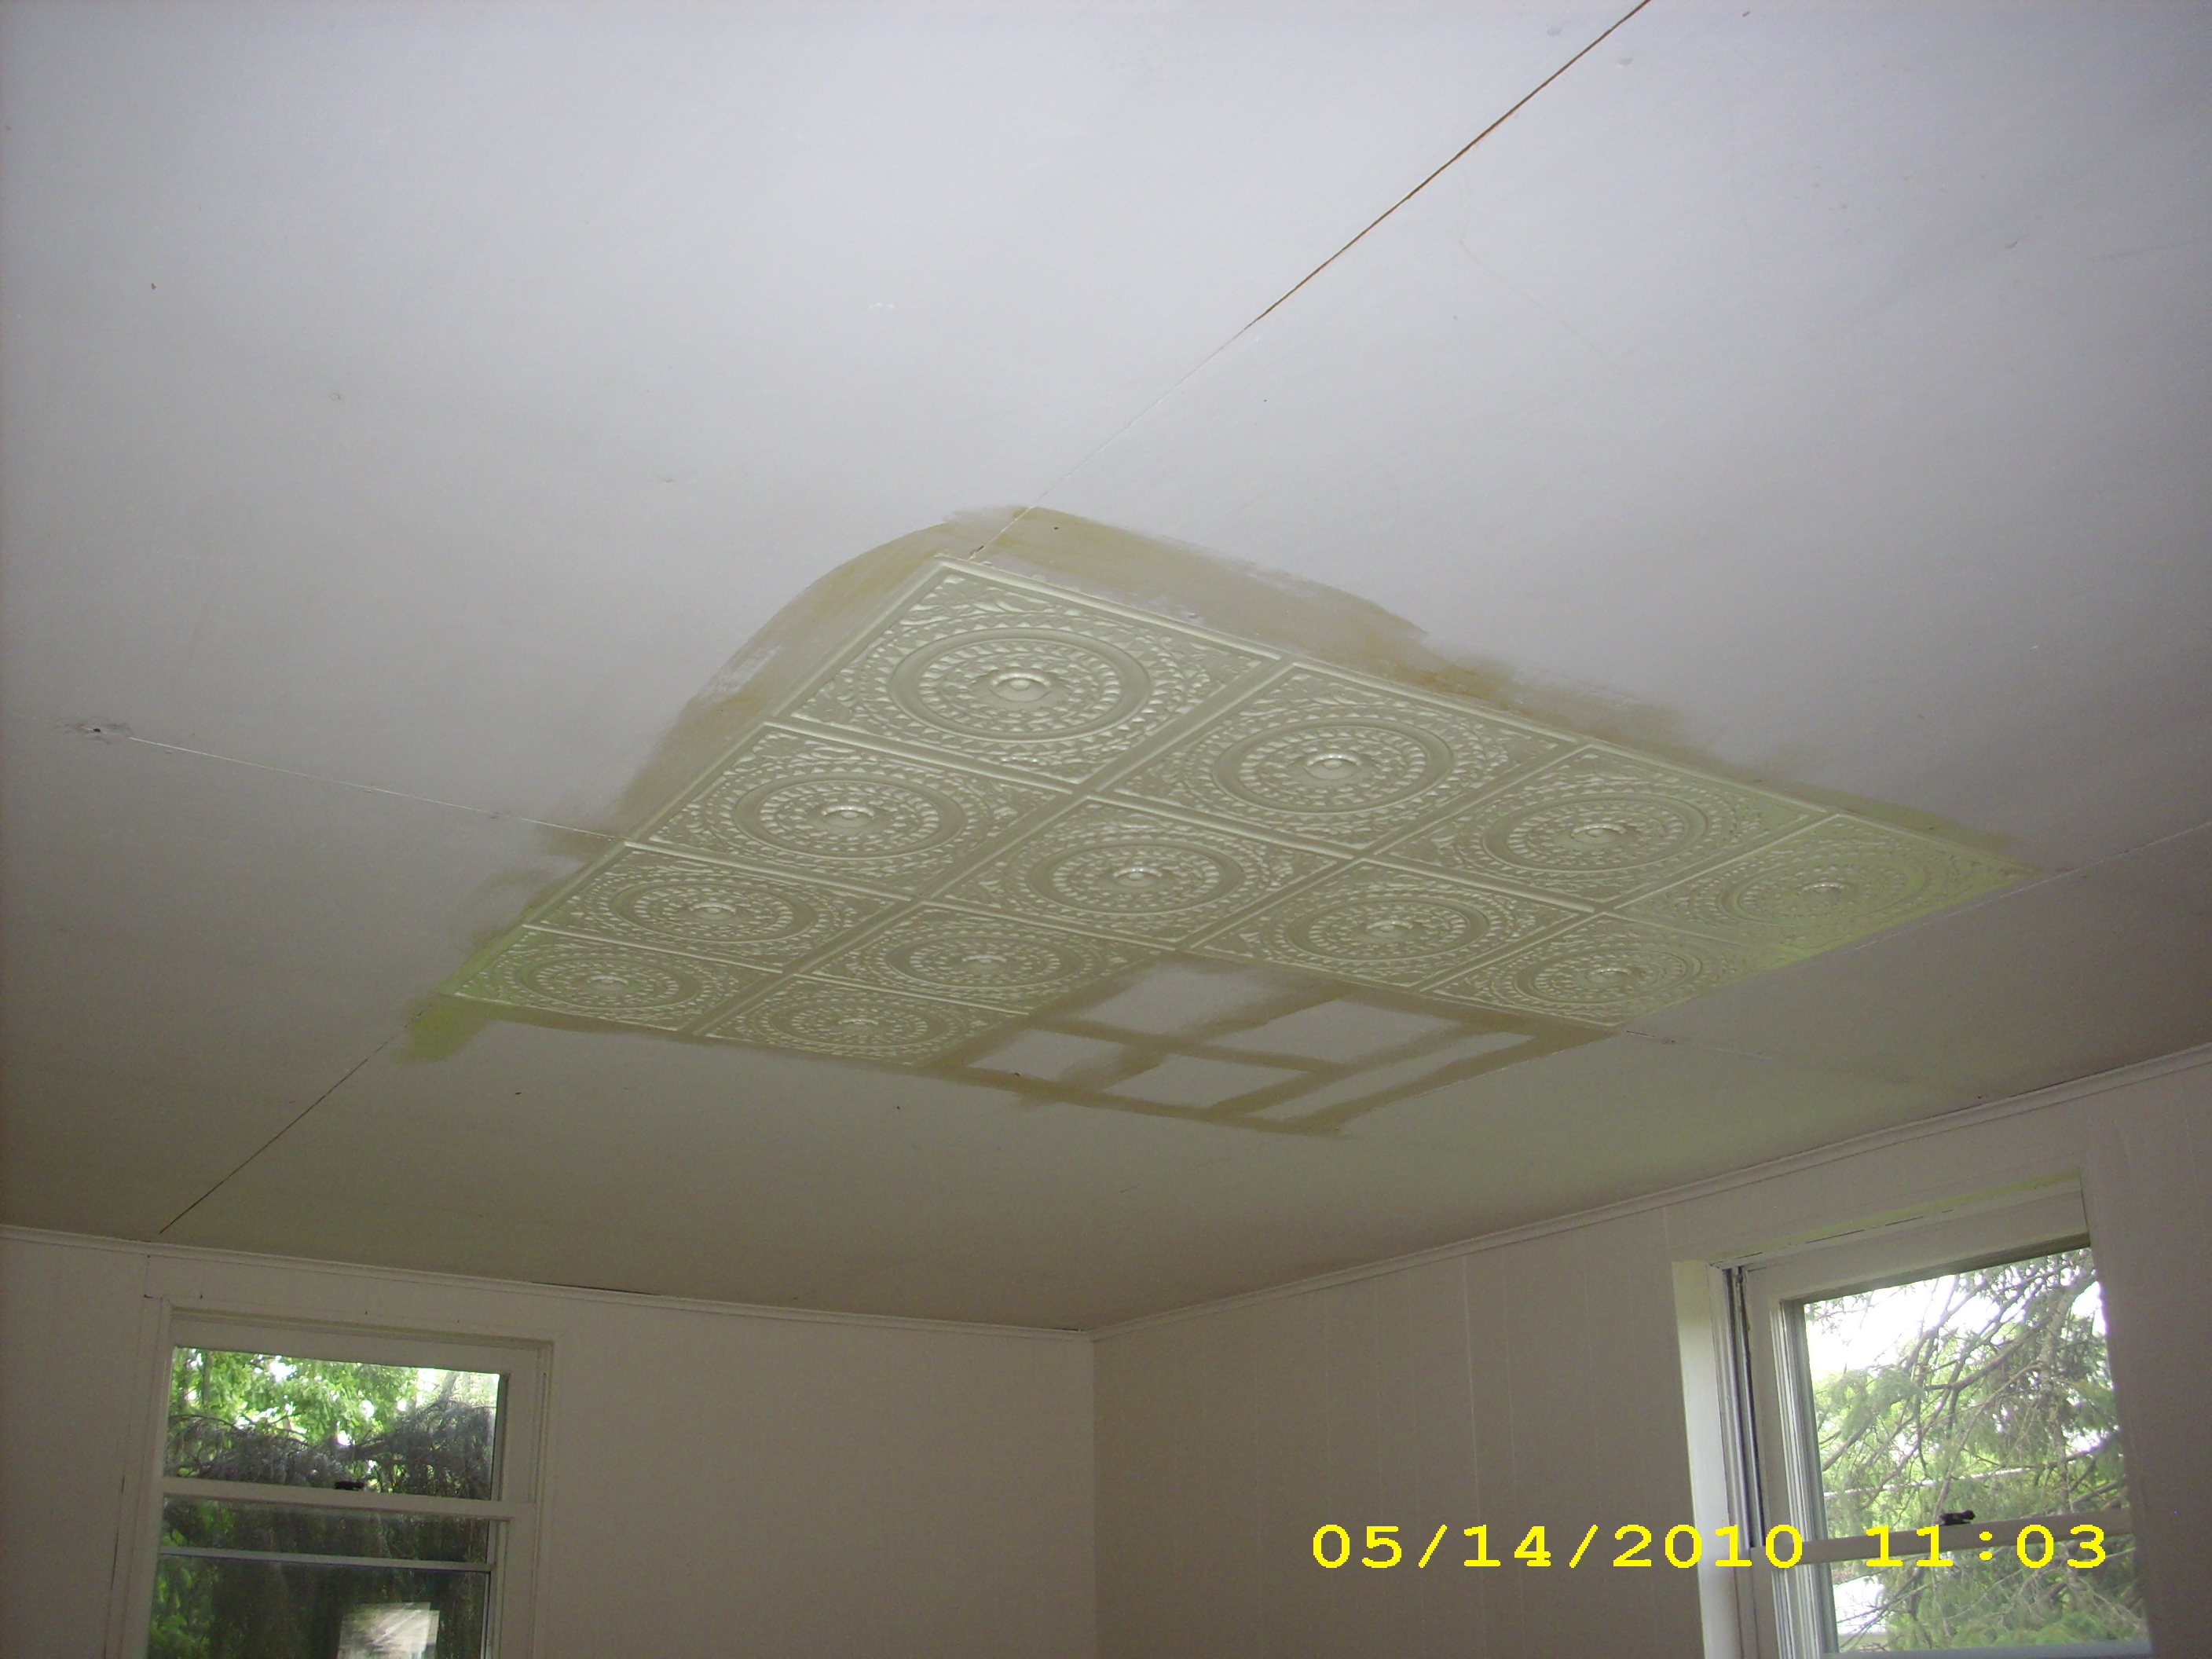 Faux tin ceiling tiles iowa city iowa decorative ceiling tiles faux tin ceiling tiles iowa city iowa dailygadgetfo Gallery